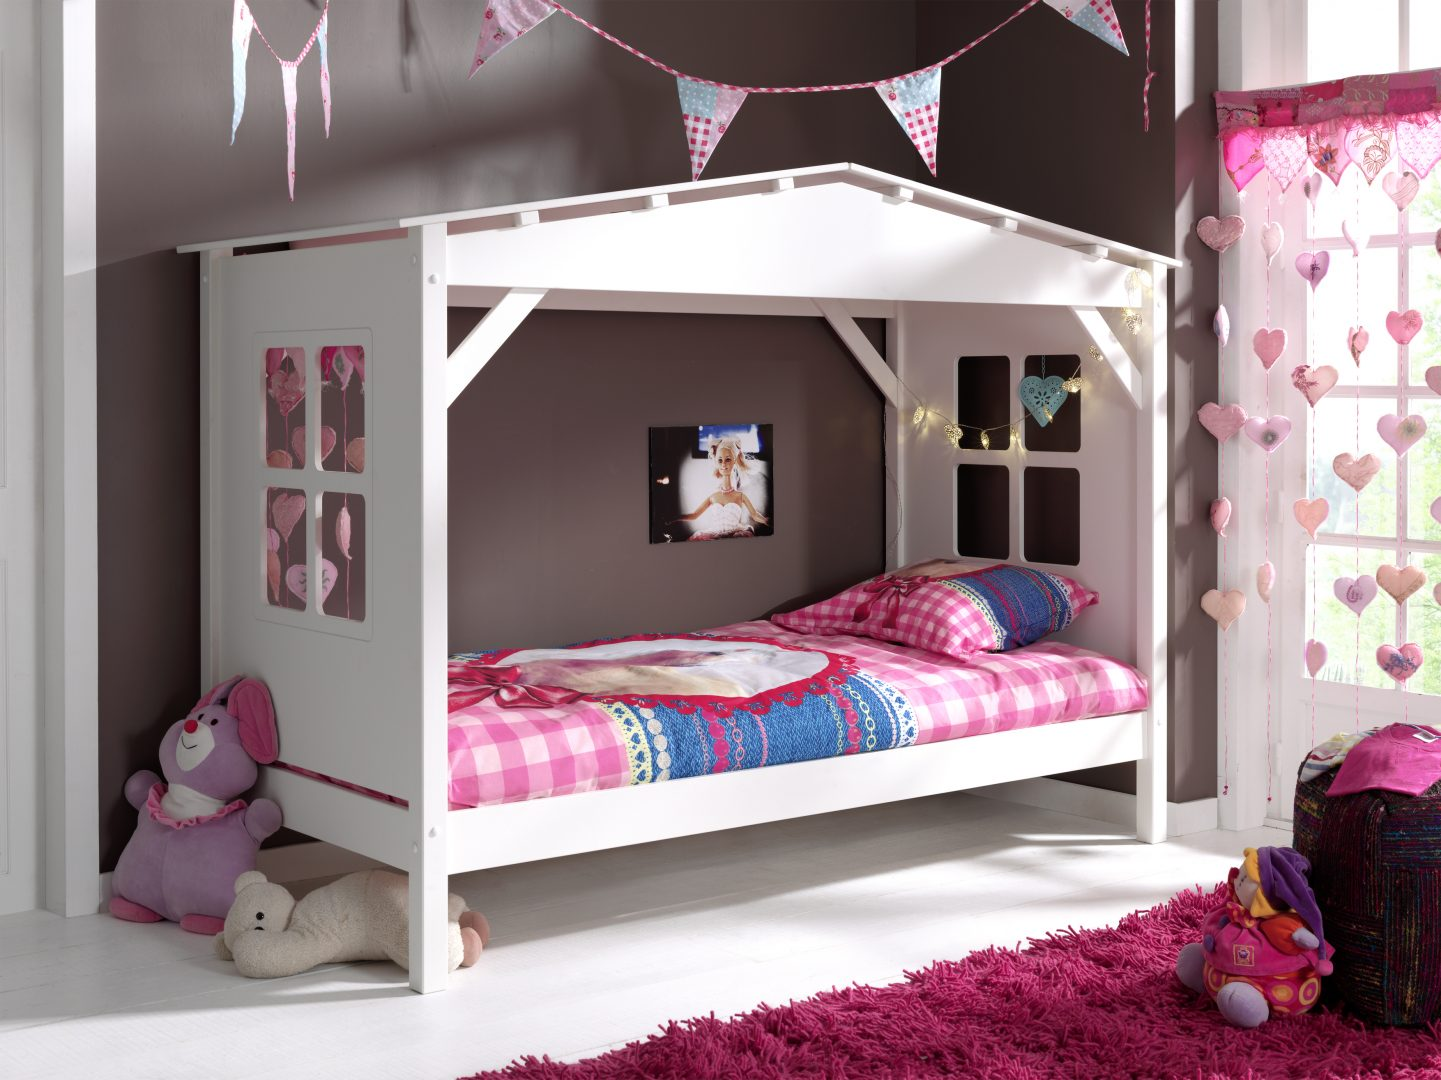 PICB9014 GIRL 04 - GET INSPIRED De kinderkamer